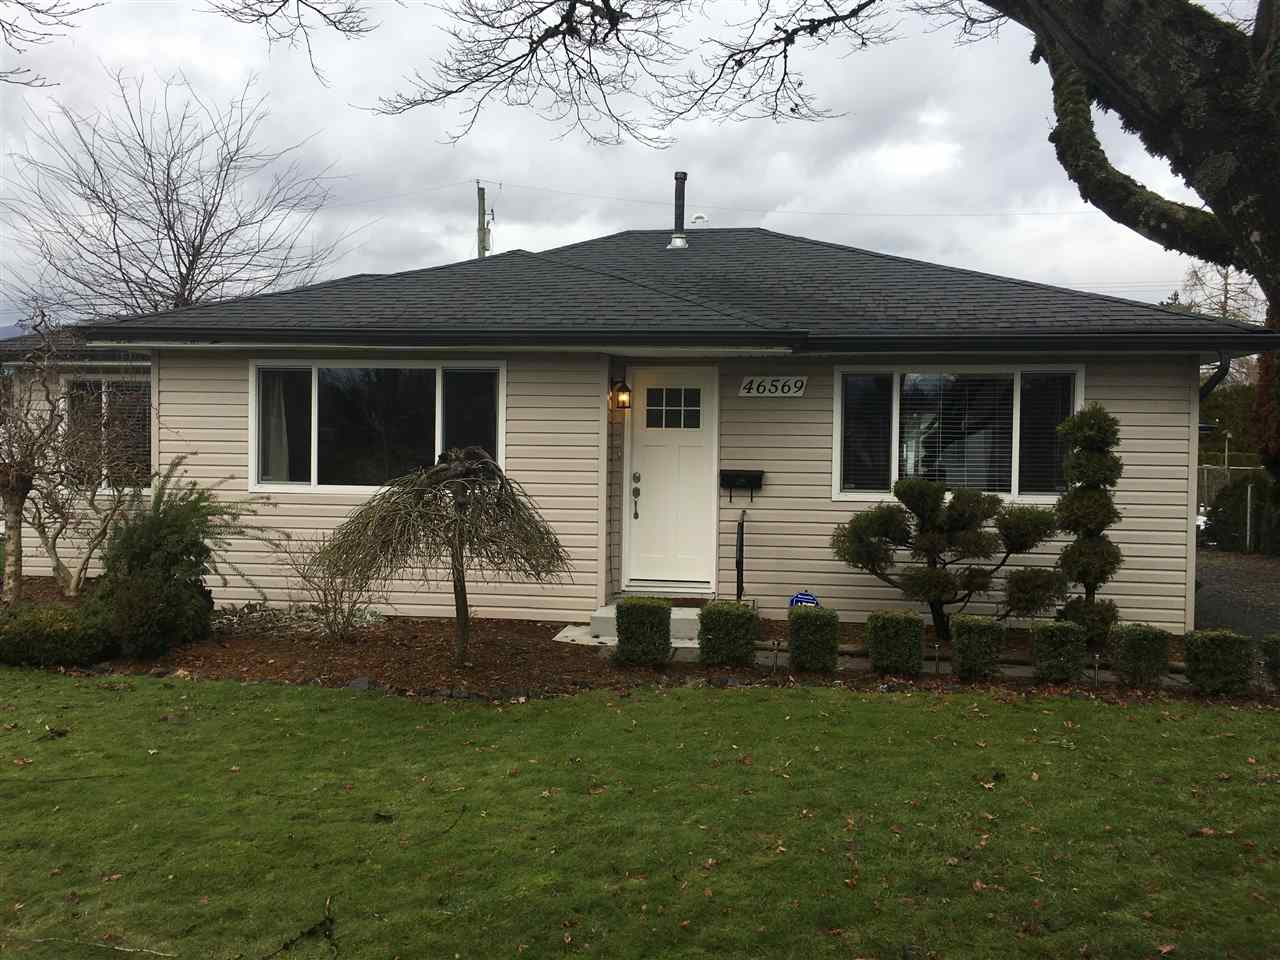 Main Photo: 46569 PORTAGE Avenue in Chilliwack: Chilliwack N Yale-Well House for sale : MLS®# R2233271